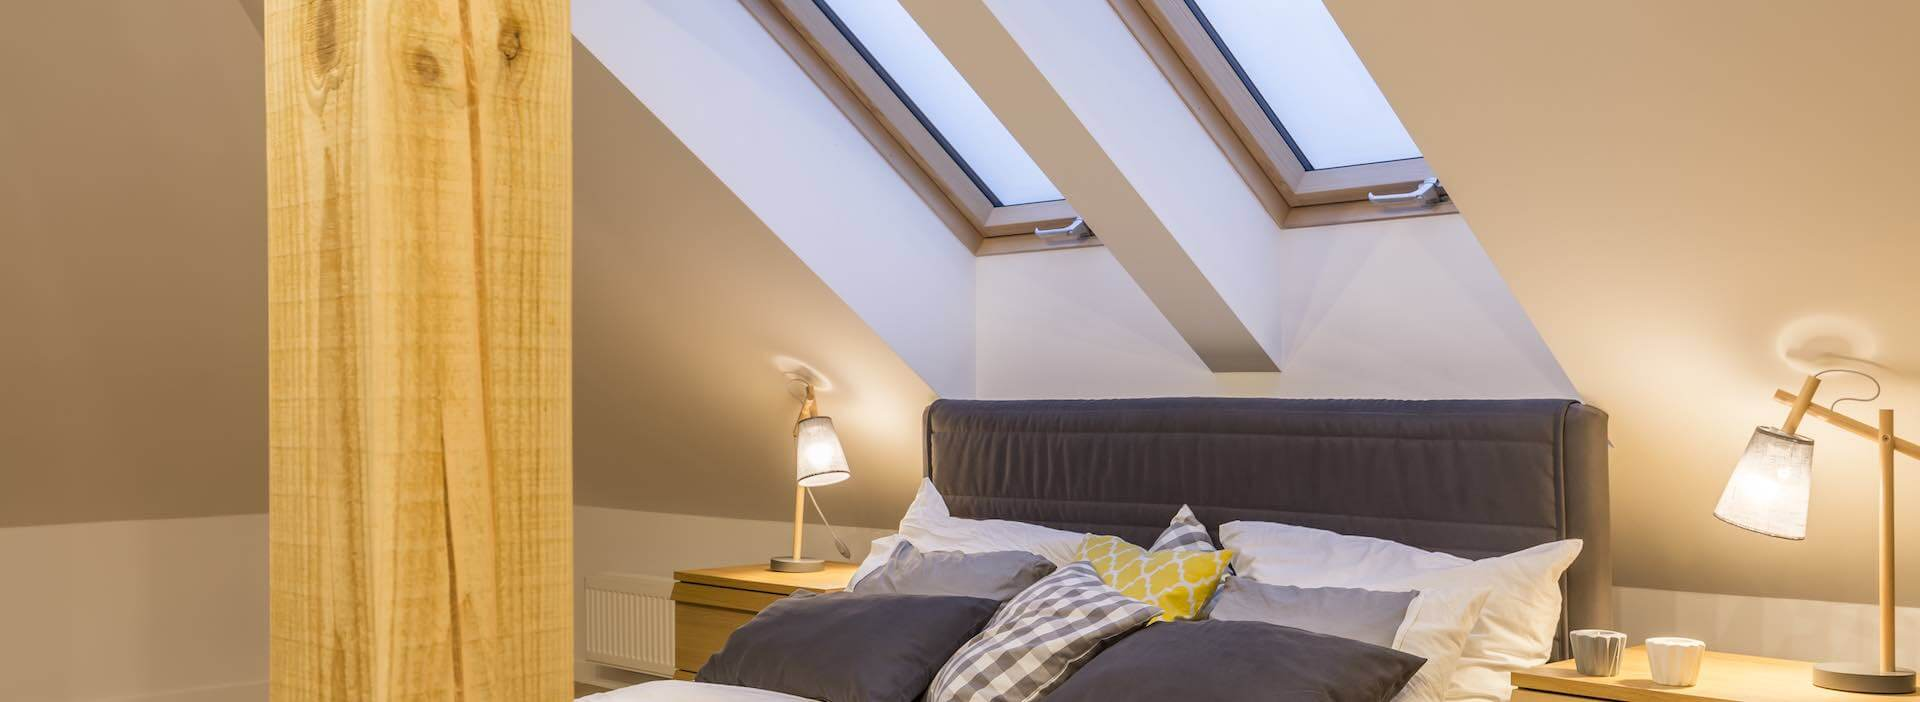 sky-blue-lofts-wales-loft-conversion-cardiff-attic-modification-penarth-barry-lisvane-fairwater-ely-roath-canton-caerphilly-bridgend-south-wales-valleys-resized